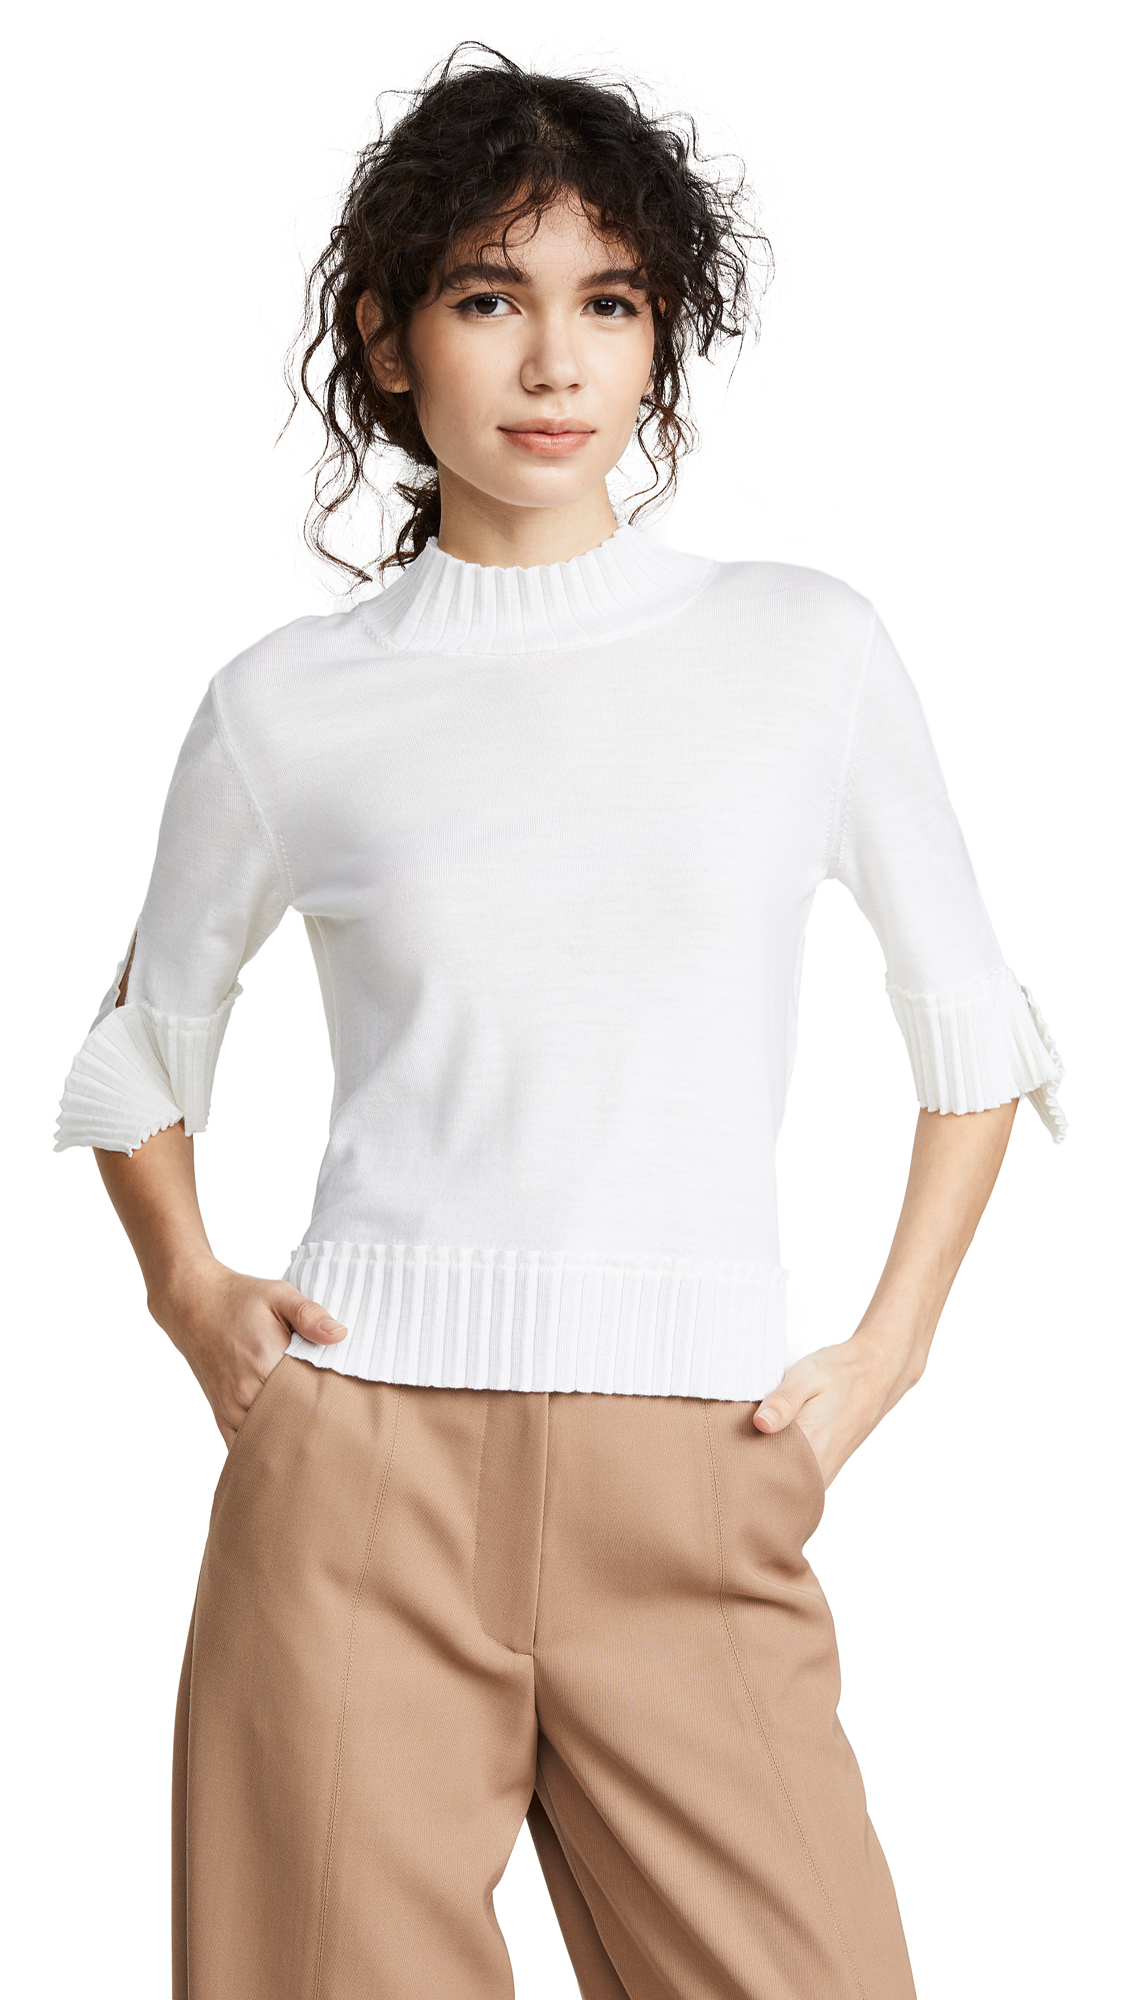 Nina Ricci Pleated Knit Sweater - Natural White